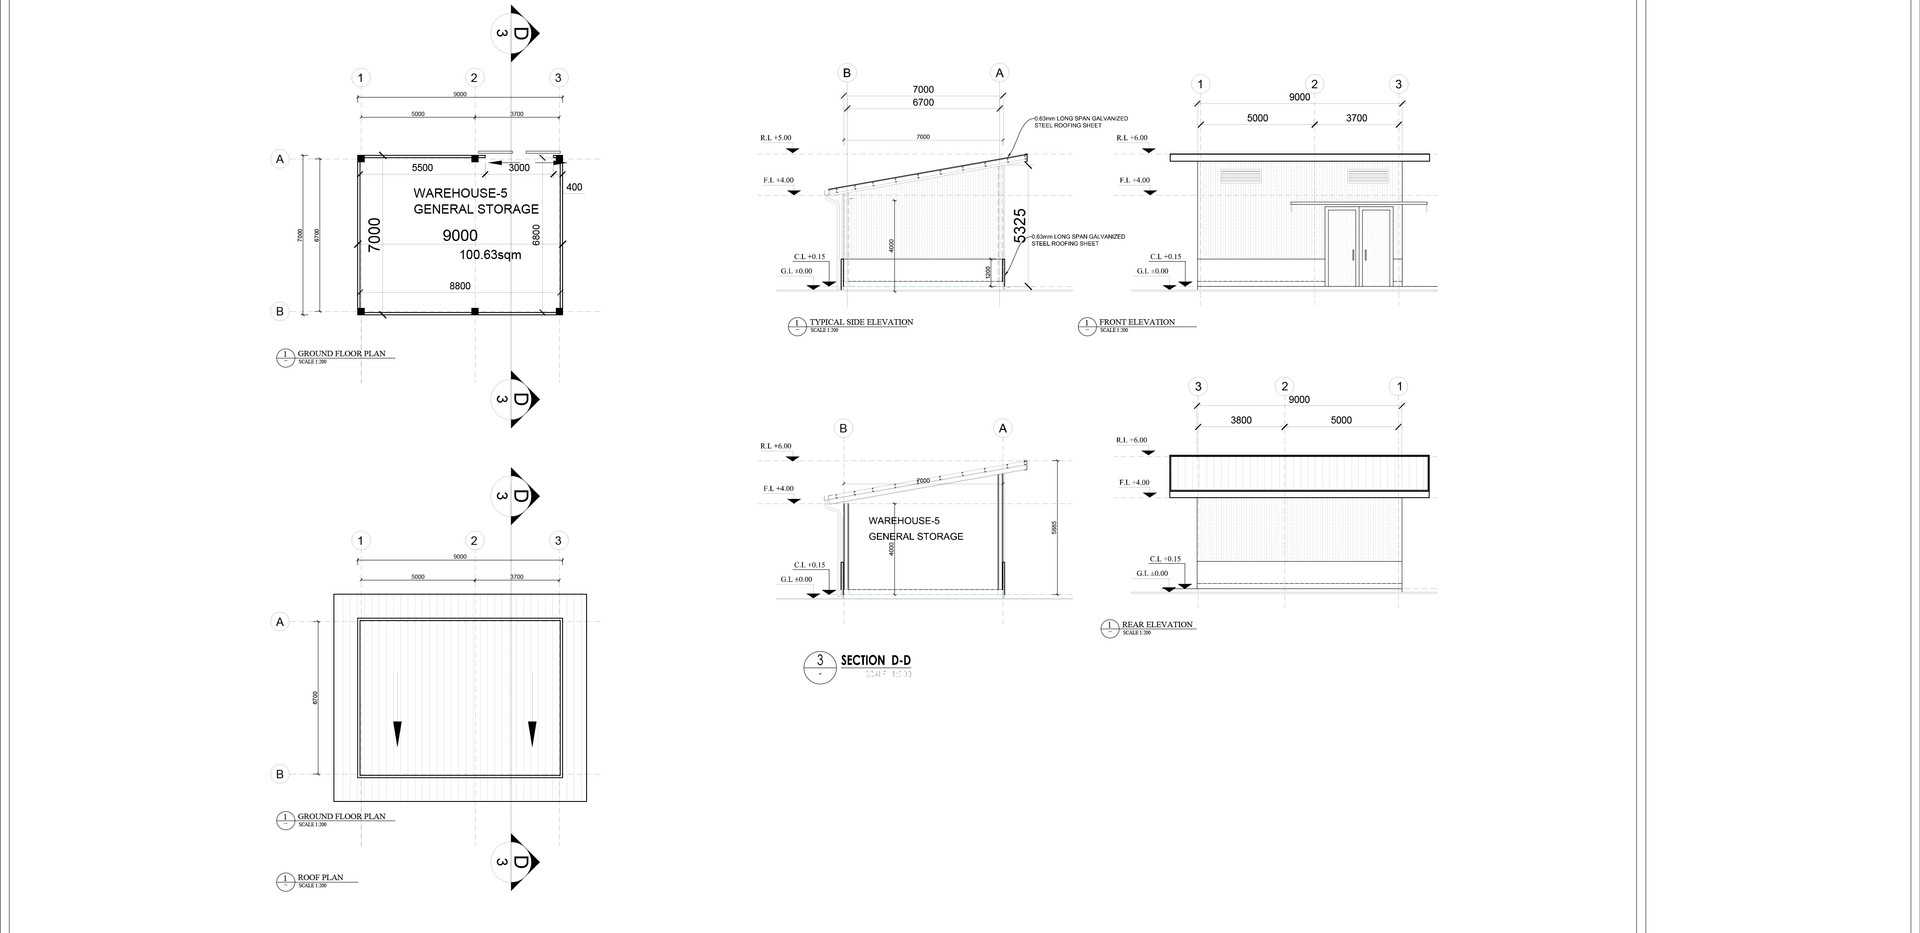 TUCN ARCHITECTURAL DRAWING (dragged) 7.jpg